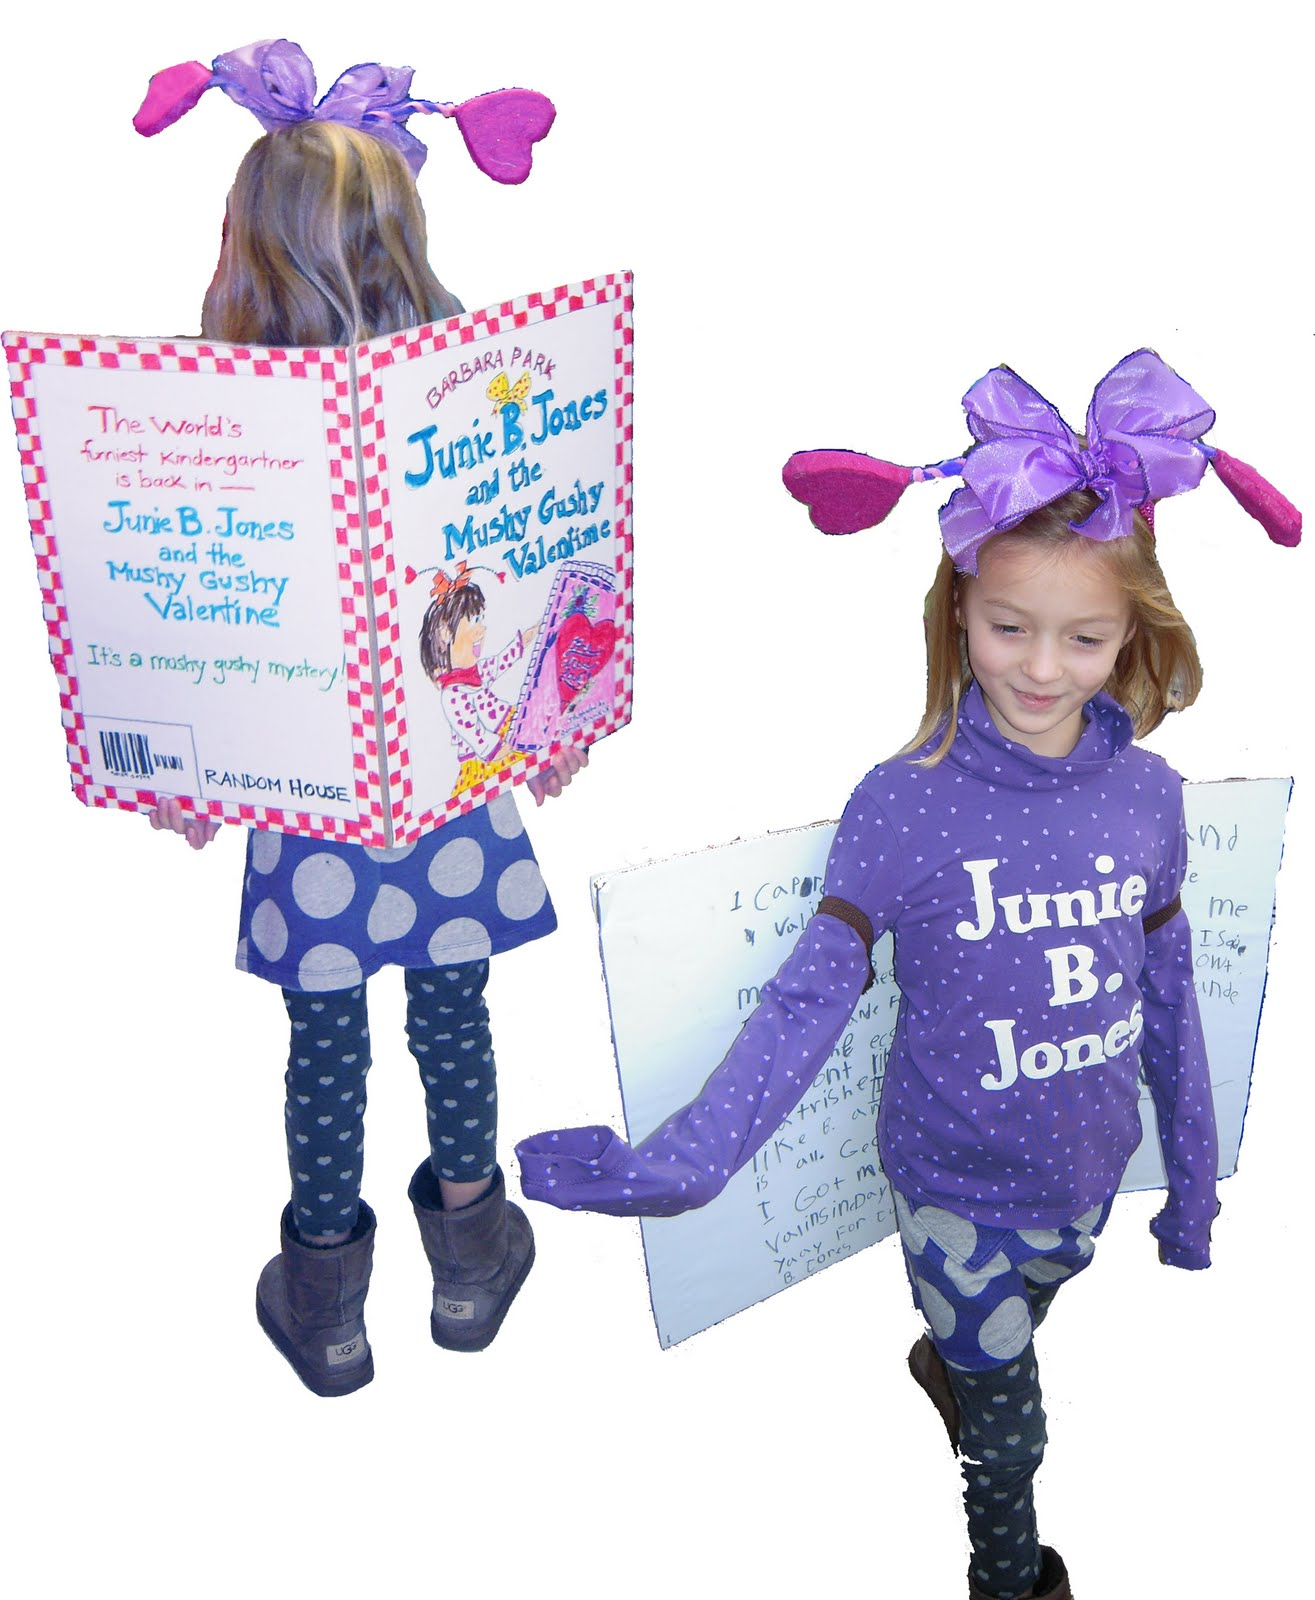 Junie B_ Jones Costume http://joelledesign.blogspot.com/2010_10_01_archive.html